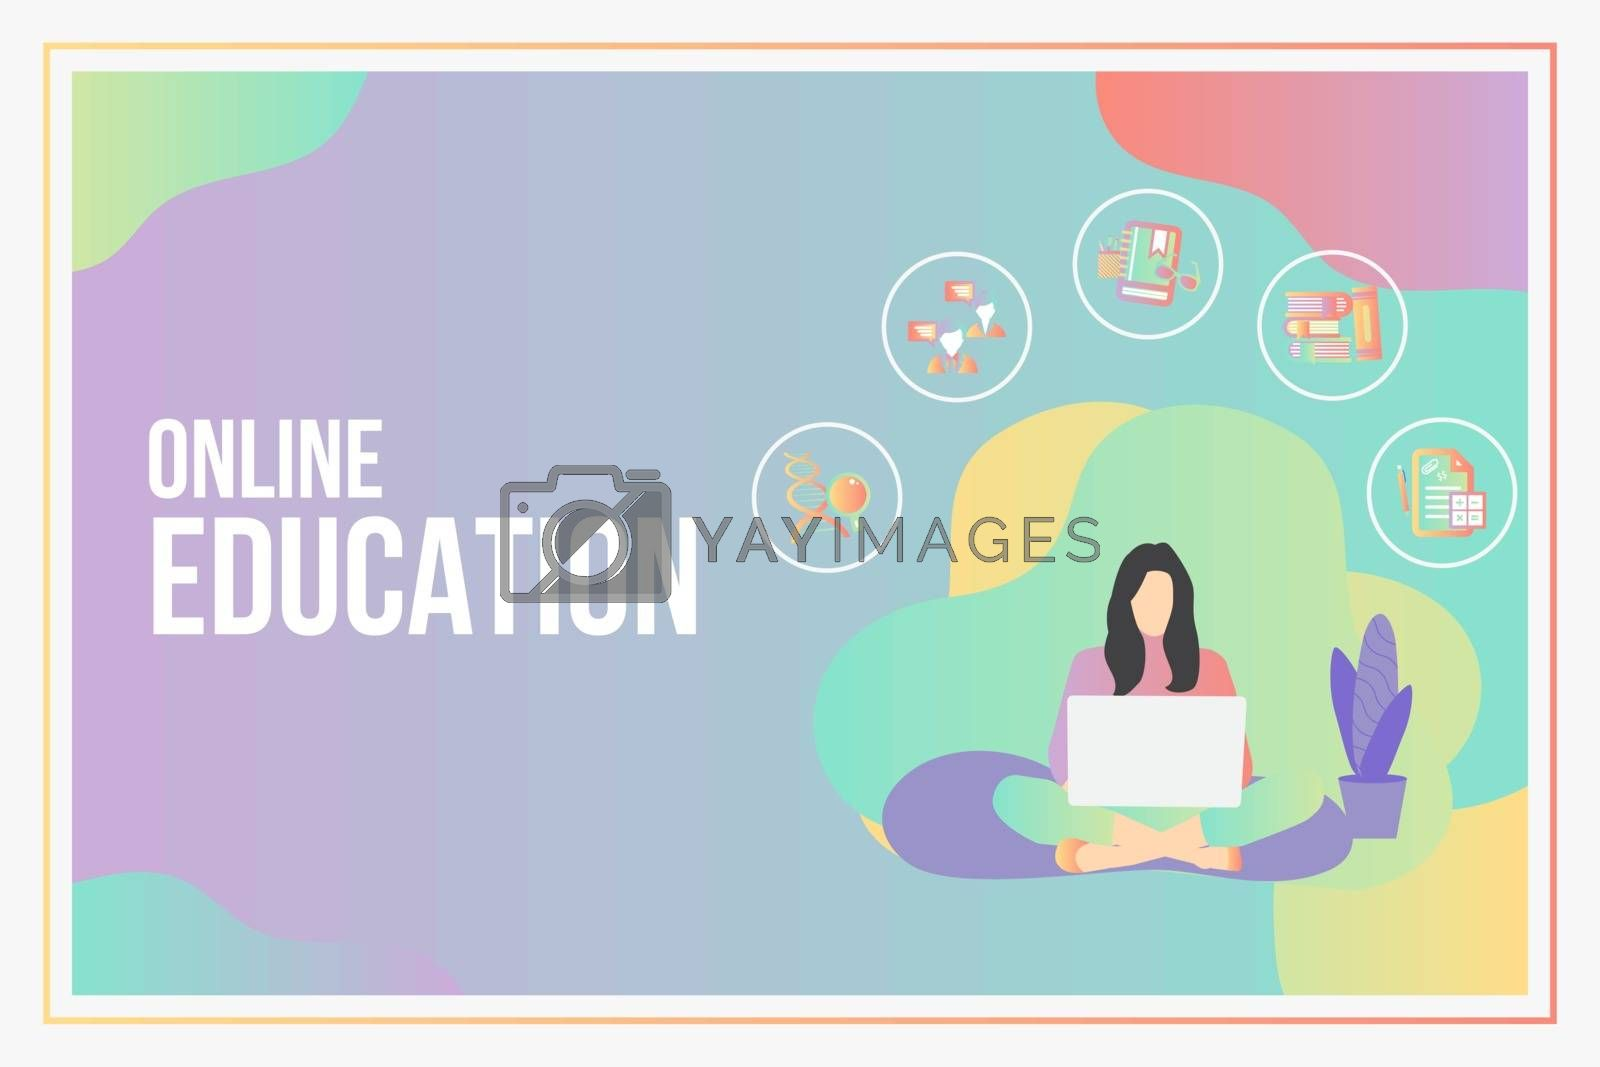 Online education concept with text place.Stay School Learn Study by Zeedoherty